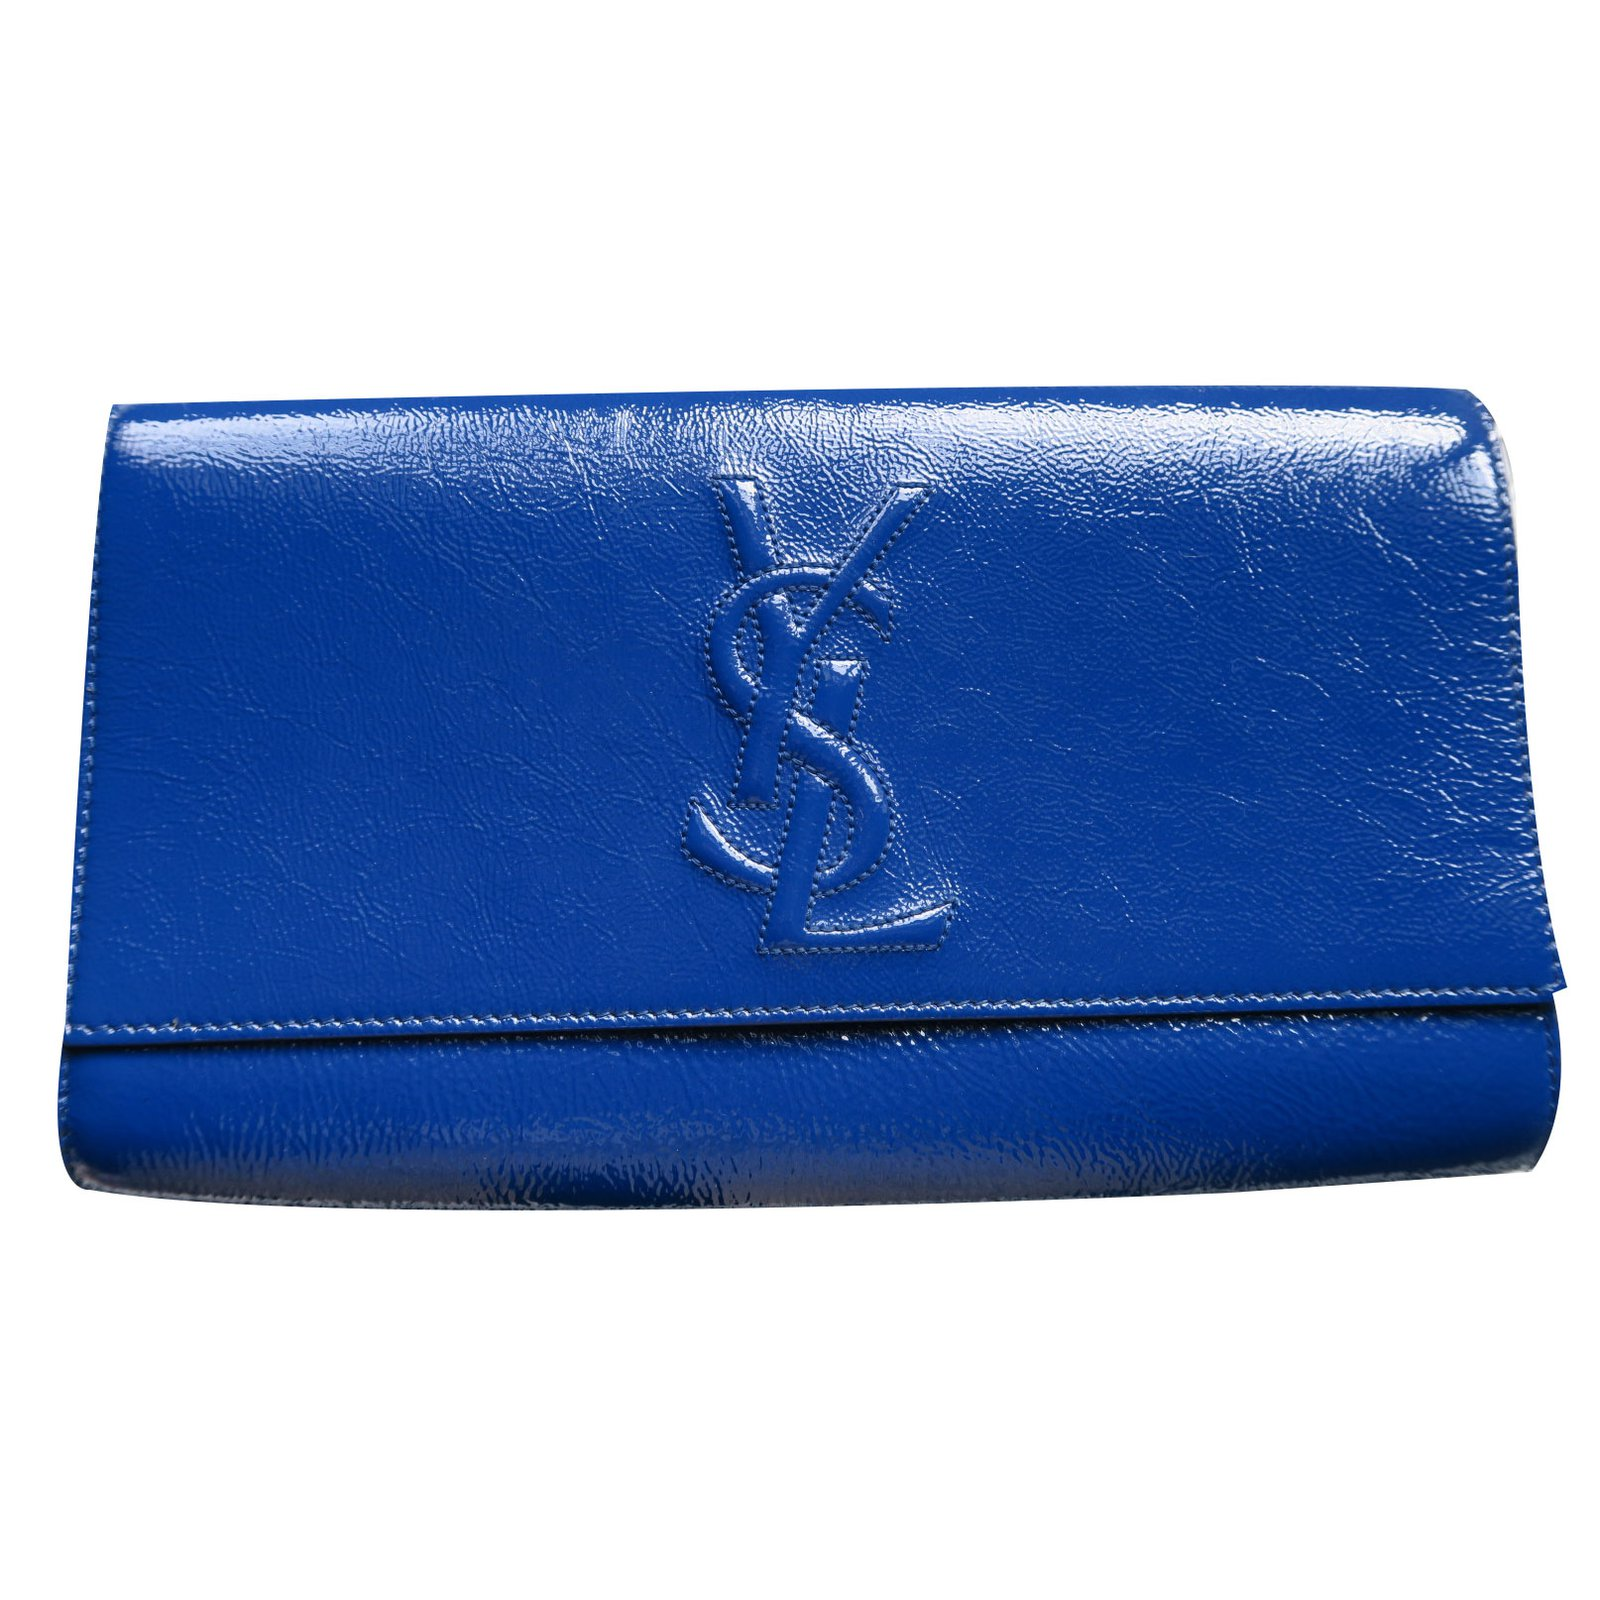 c226adfceb Yves Saint Laurent Clutch bags Clutch bags Patent leather Blue ref.19318